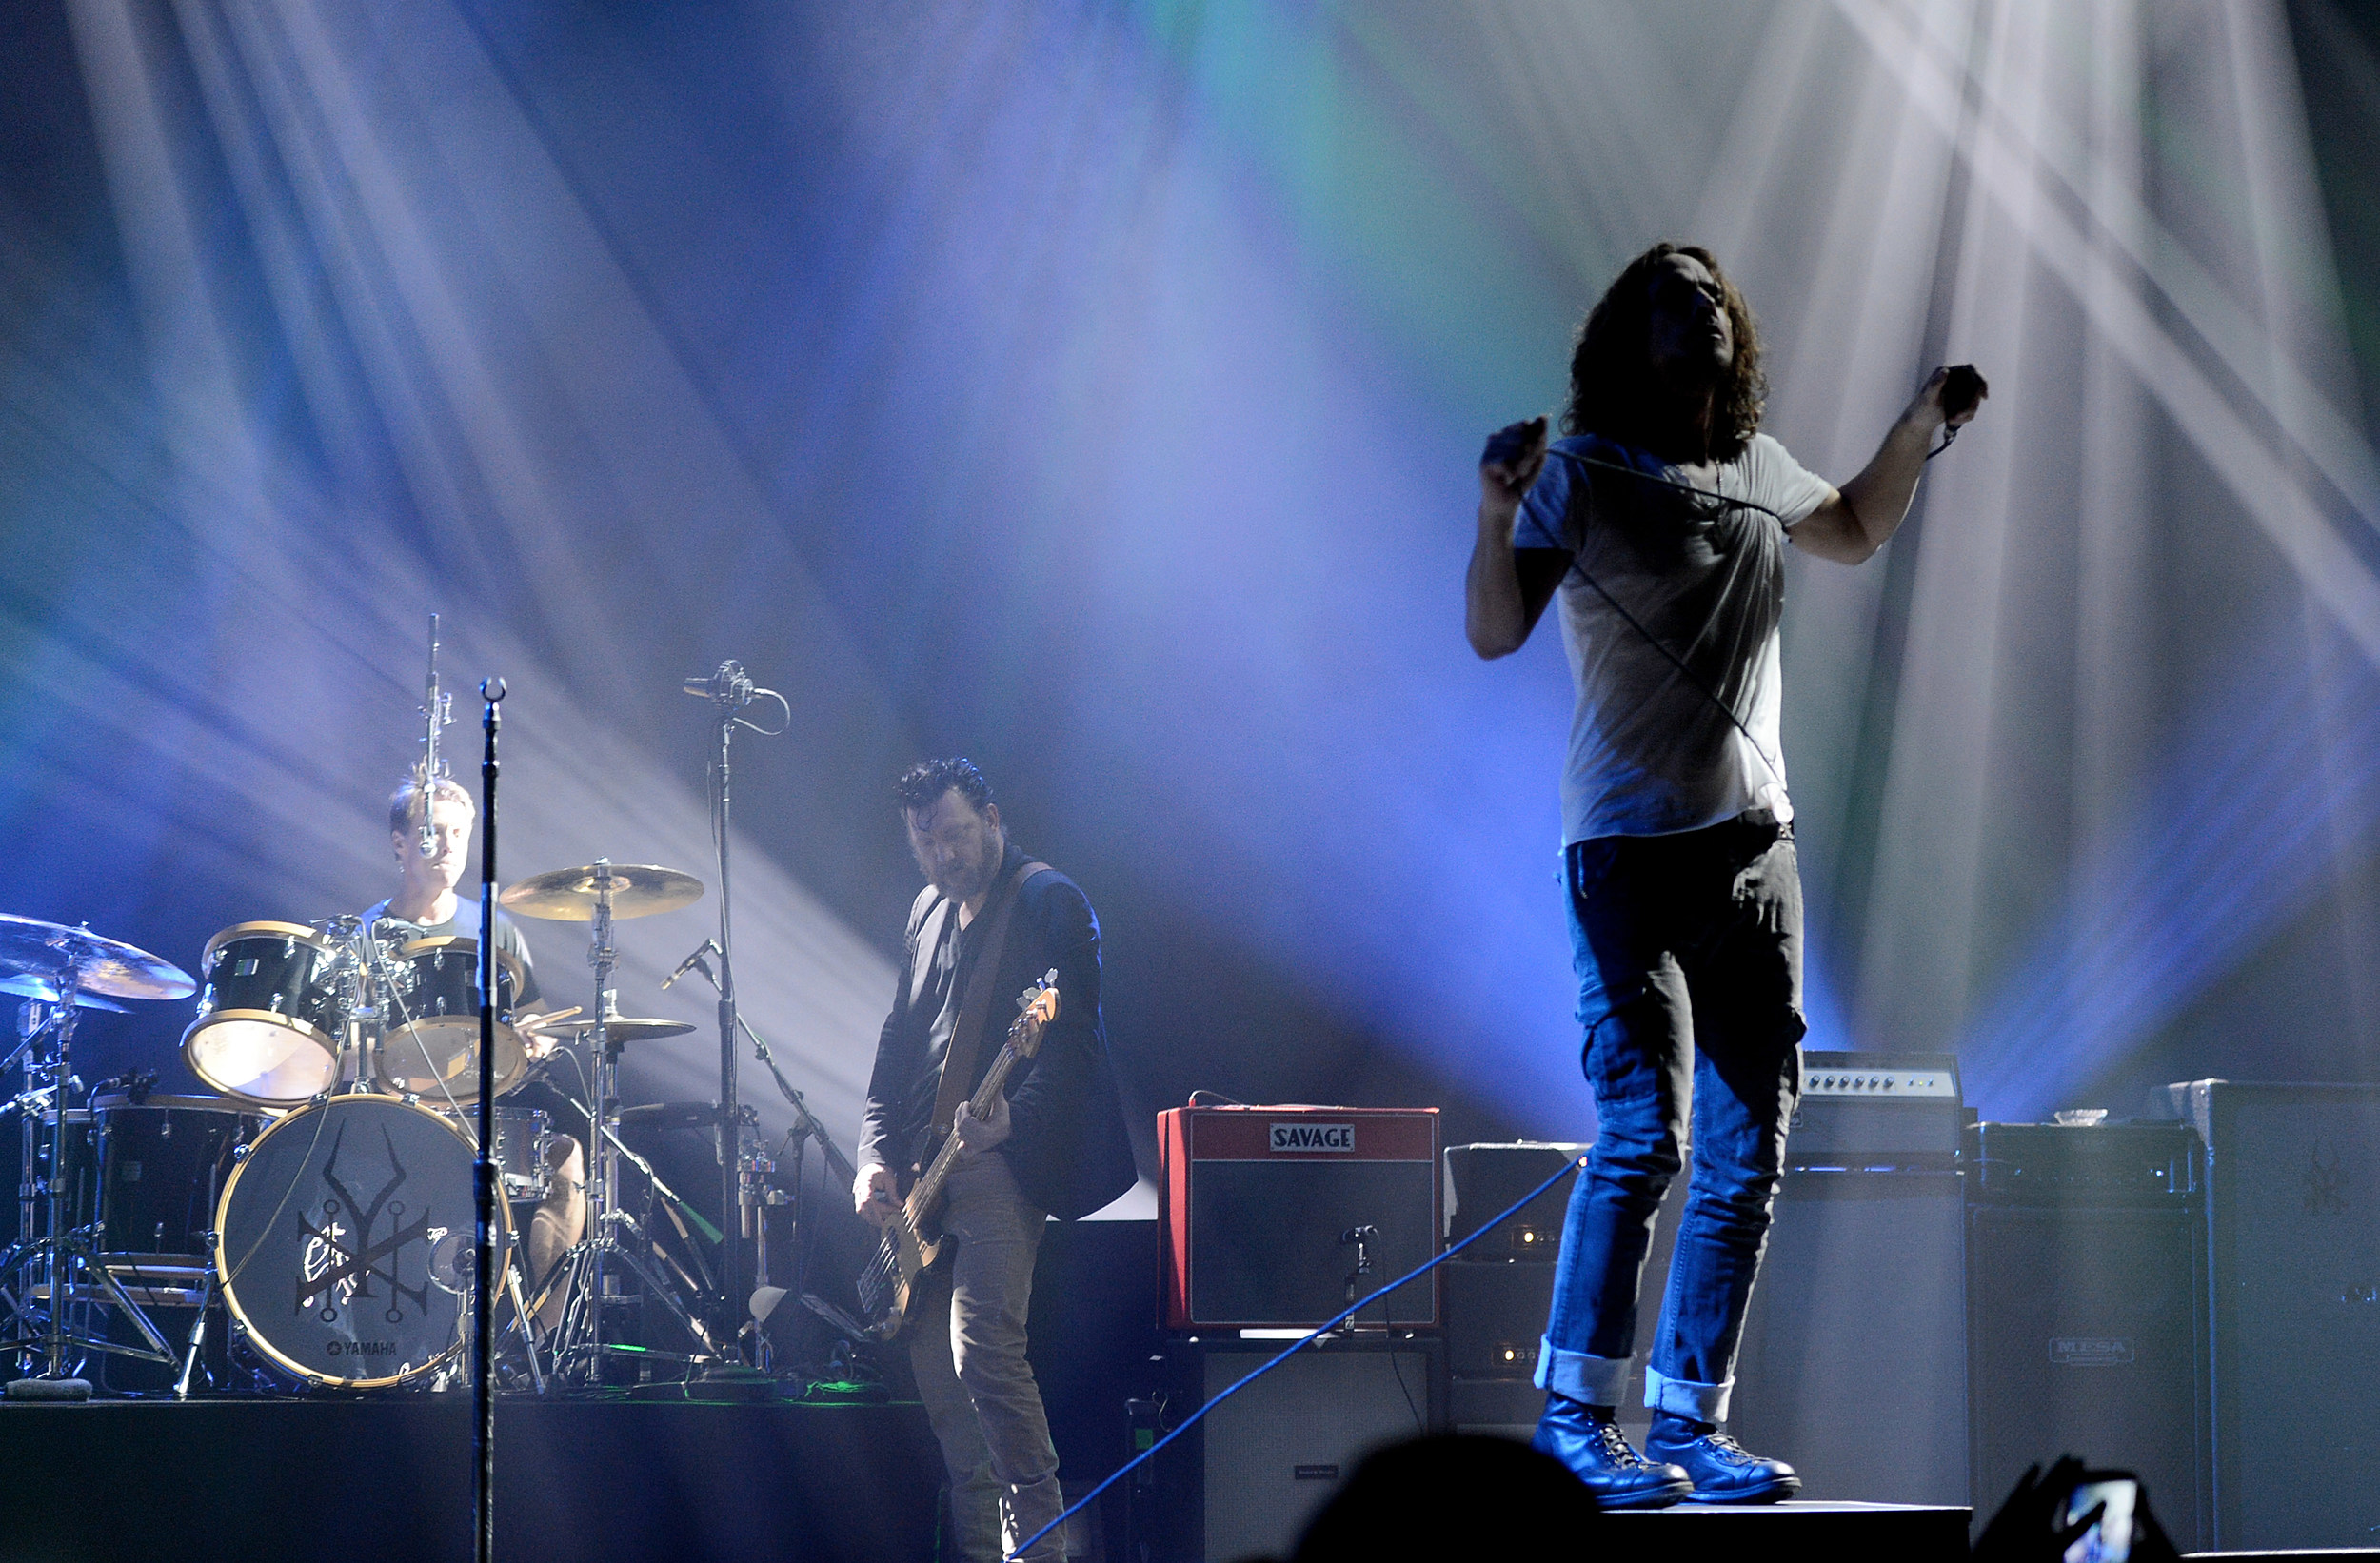 Win a trip to see Soundgarden in Austin courtesy of KLAQ!